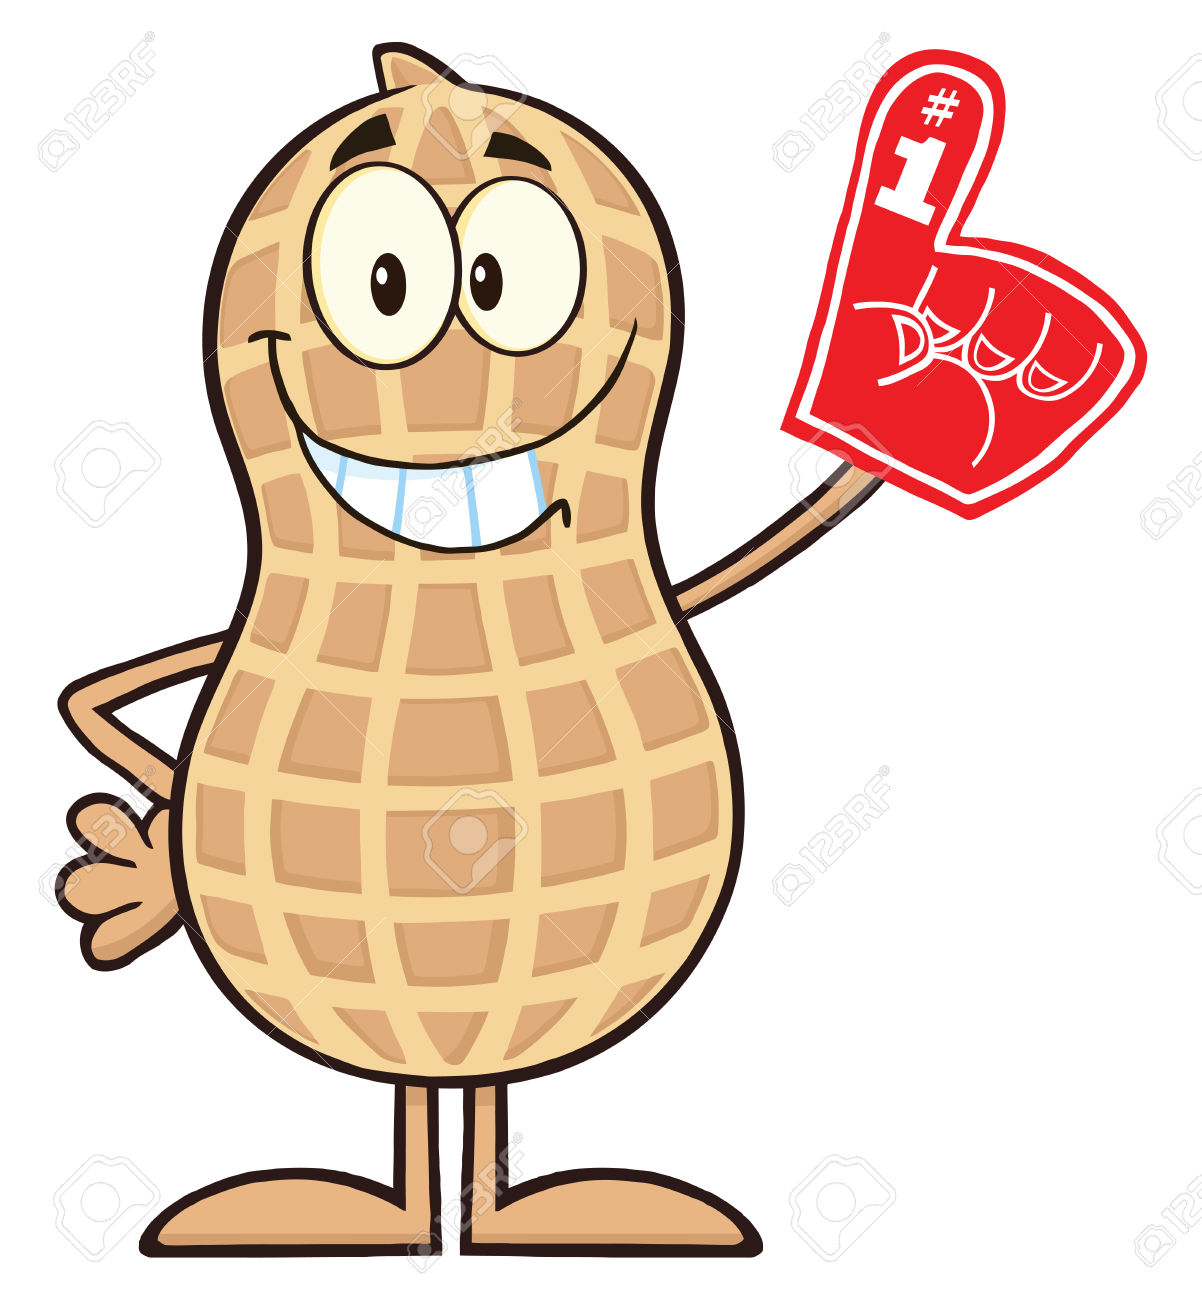 Smiling Peanut Cartoon Character Wearing A Foam Finger.